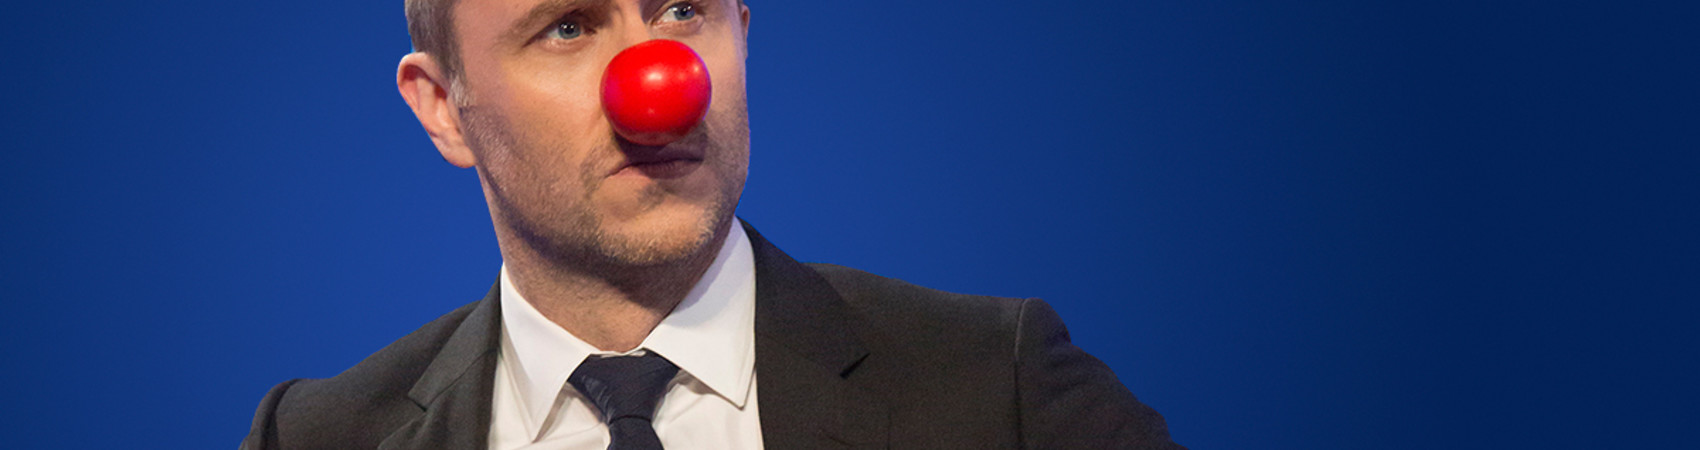 Chris Hardwick will host the Red Nose Day Special on NBC.